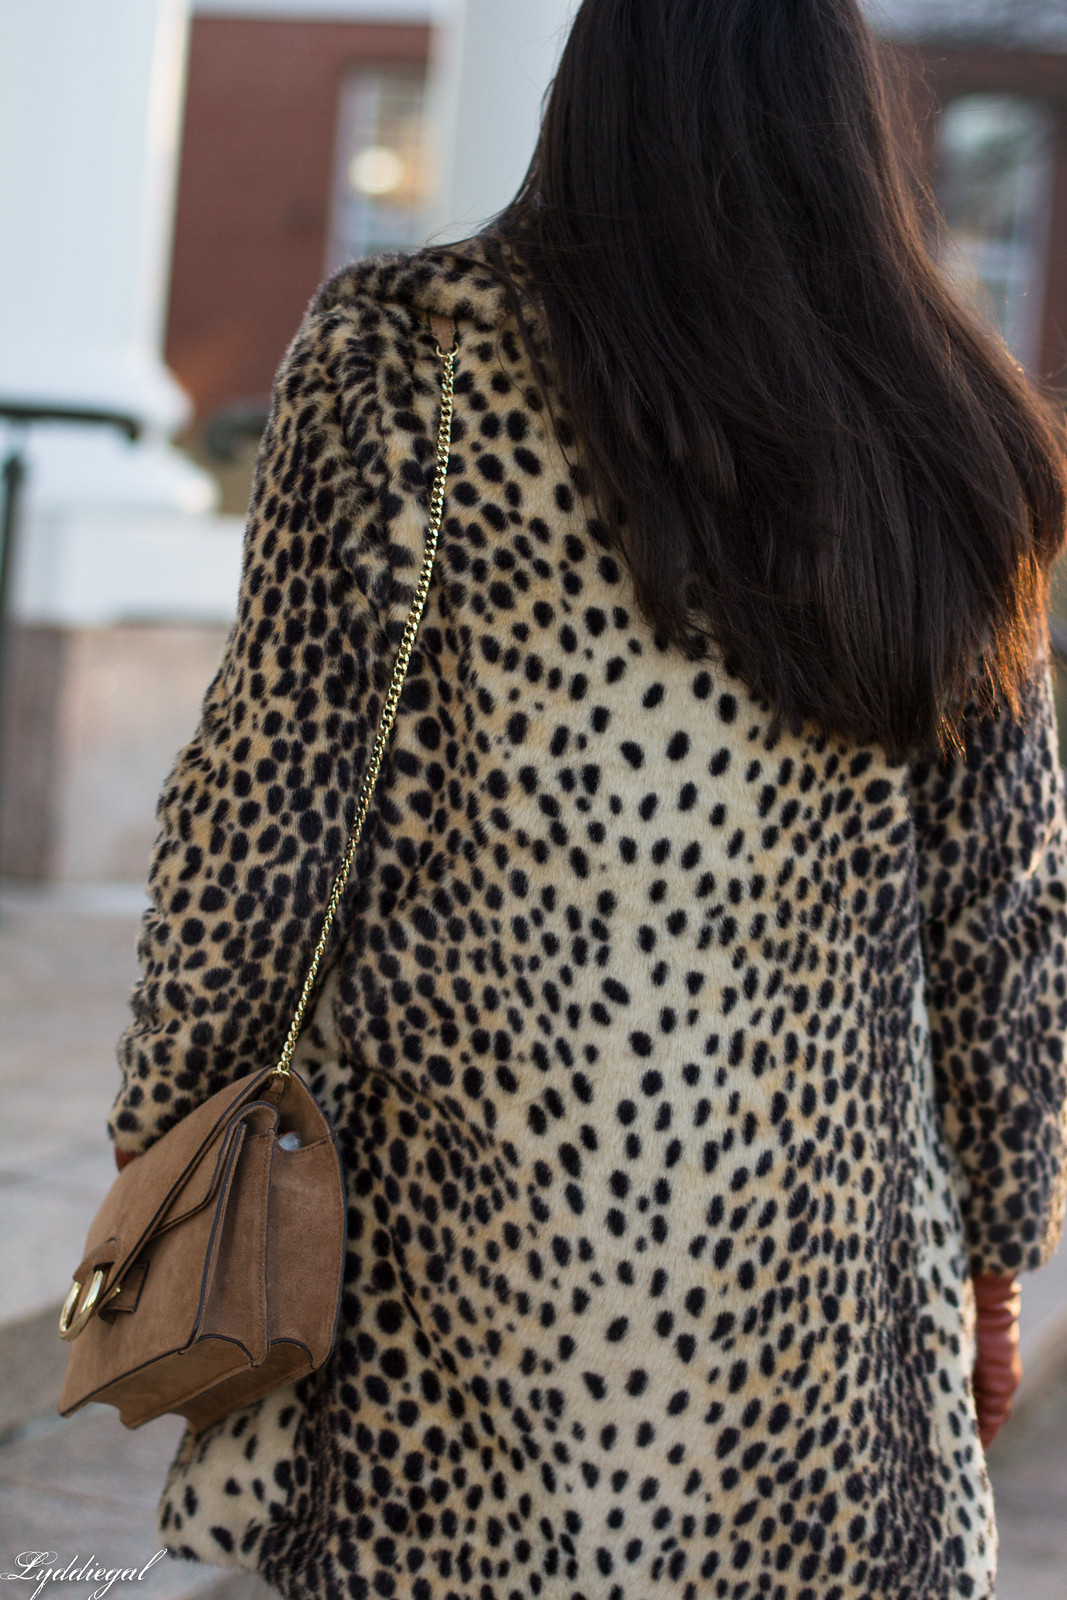 leopard fur coat, grey jeans, over the knee boots, camel sweater, winter outfit-22.jpg